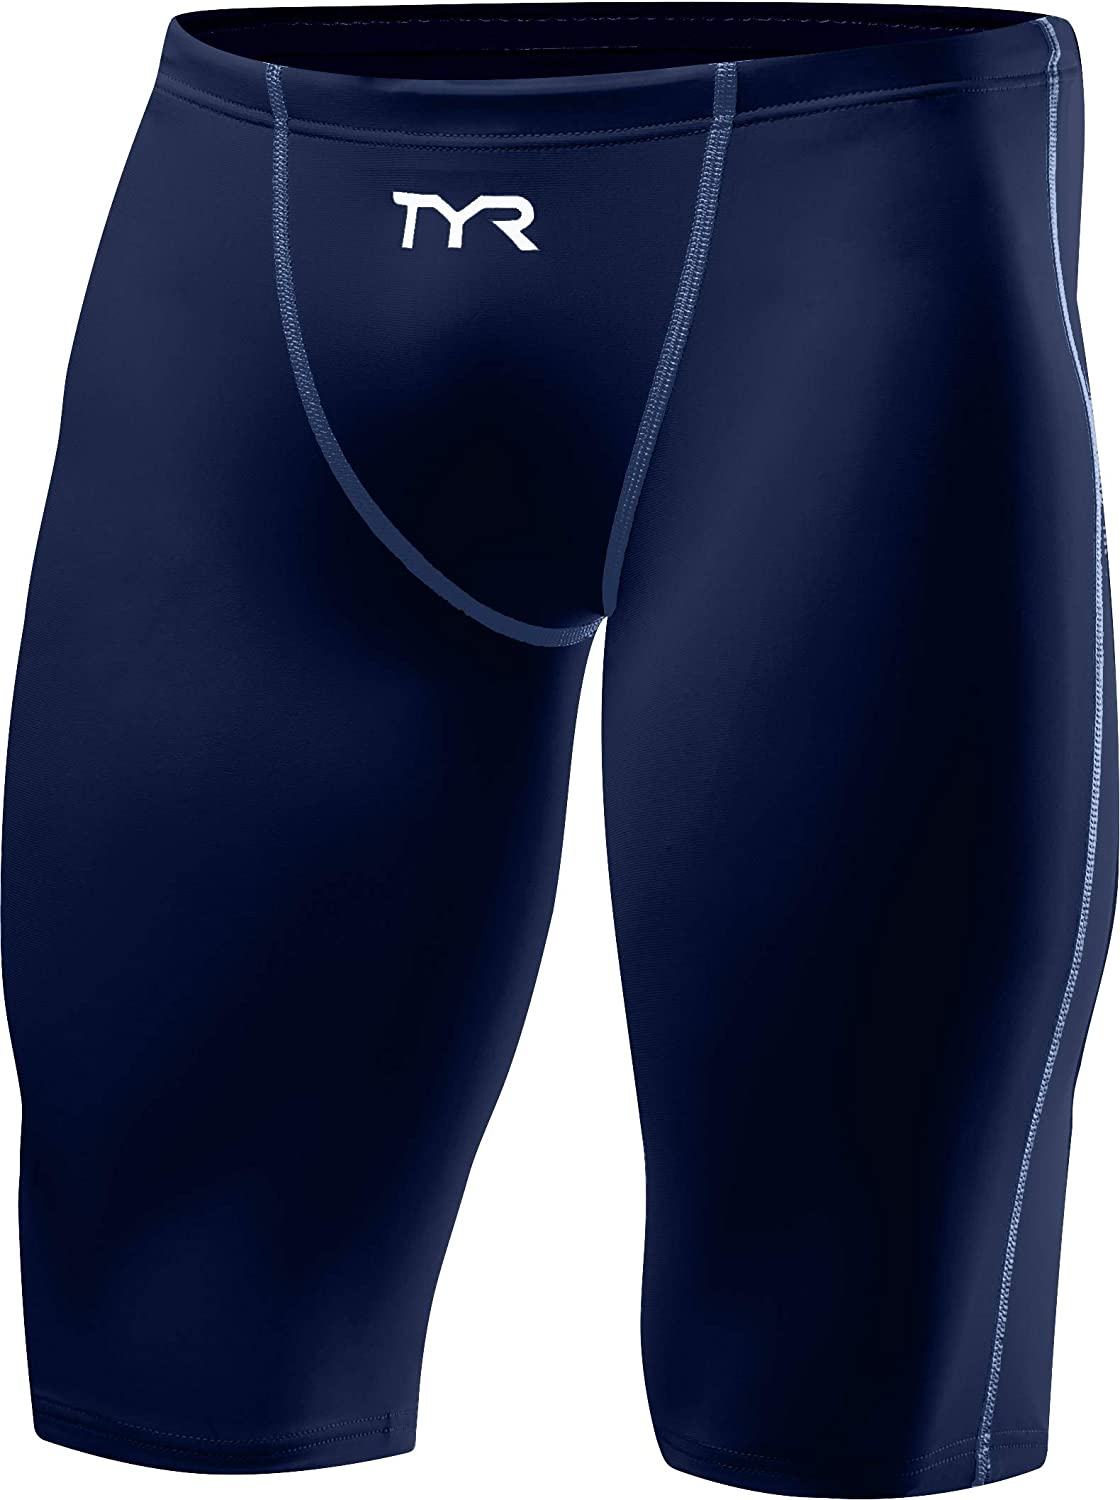 Mens Costume Tender Fina Approved Men TPSM6A TYR Line Thresher